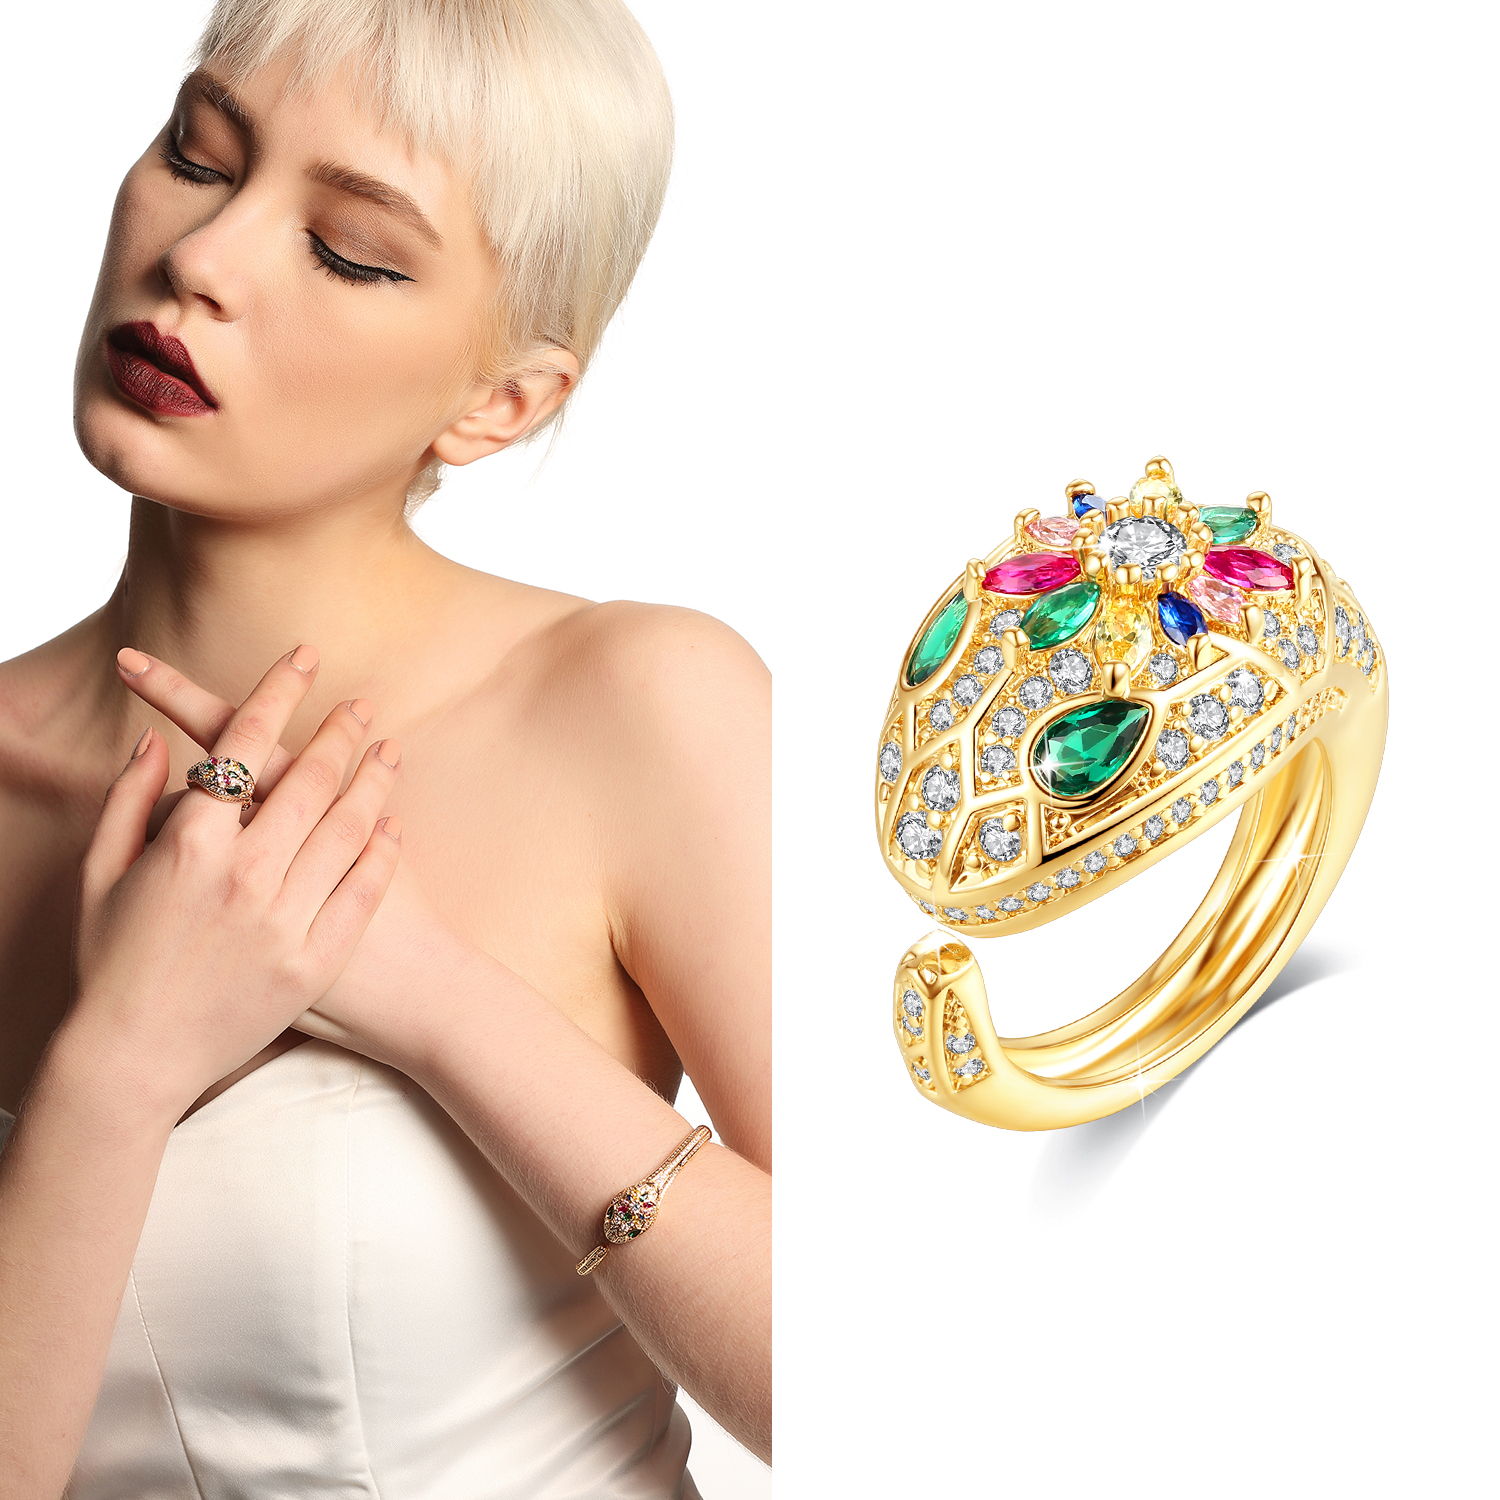 Holylove 2 Color Women Statement Open Ring Snake Gold Plated Colorful Cubic Zirconia Fashion Fine Jewelry Accessories 1 Piece with Gift Box